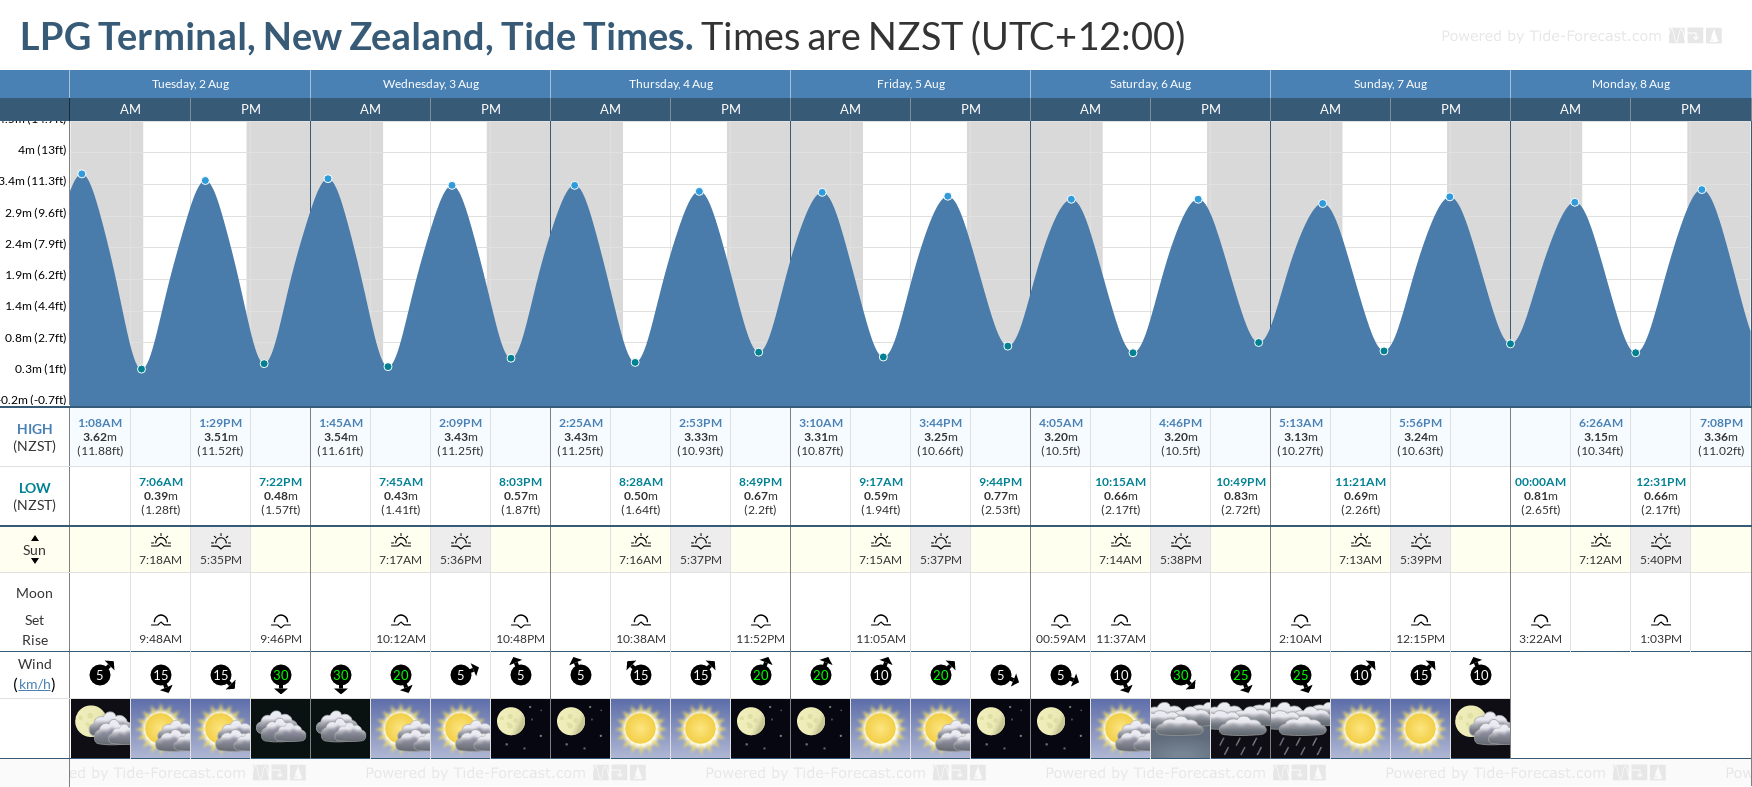 LPG Terminal, New Zealand Tide Chart including high and low tide tide times for the next 7 days